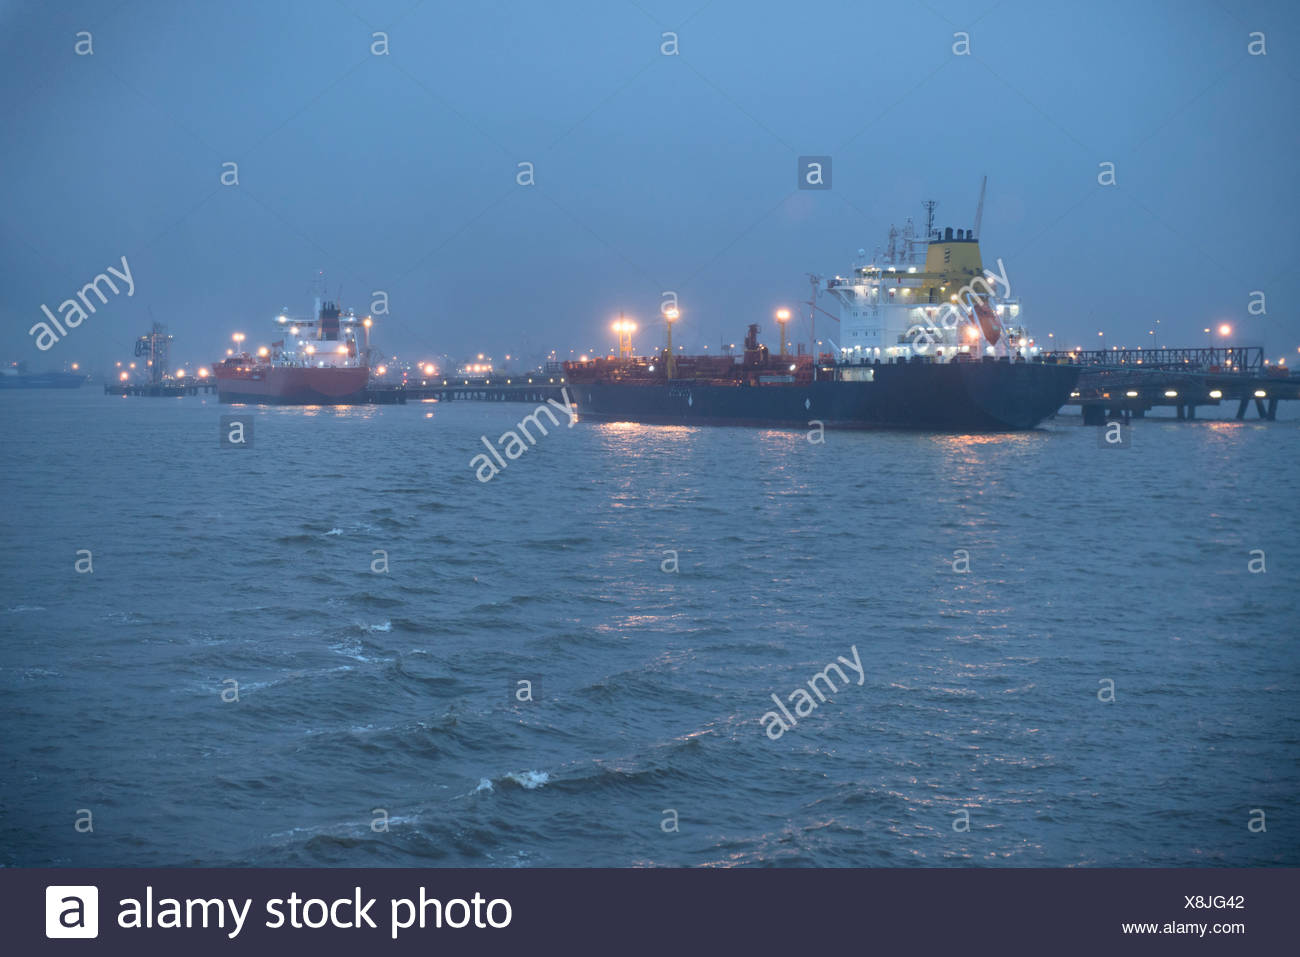 Tanker ships lit up at night - Stock Image